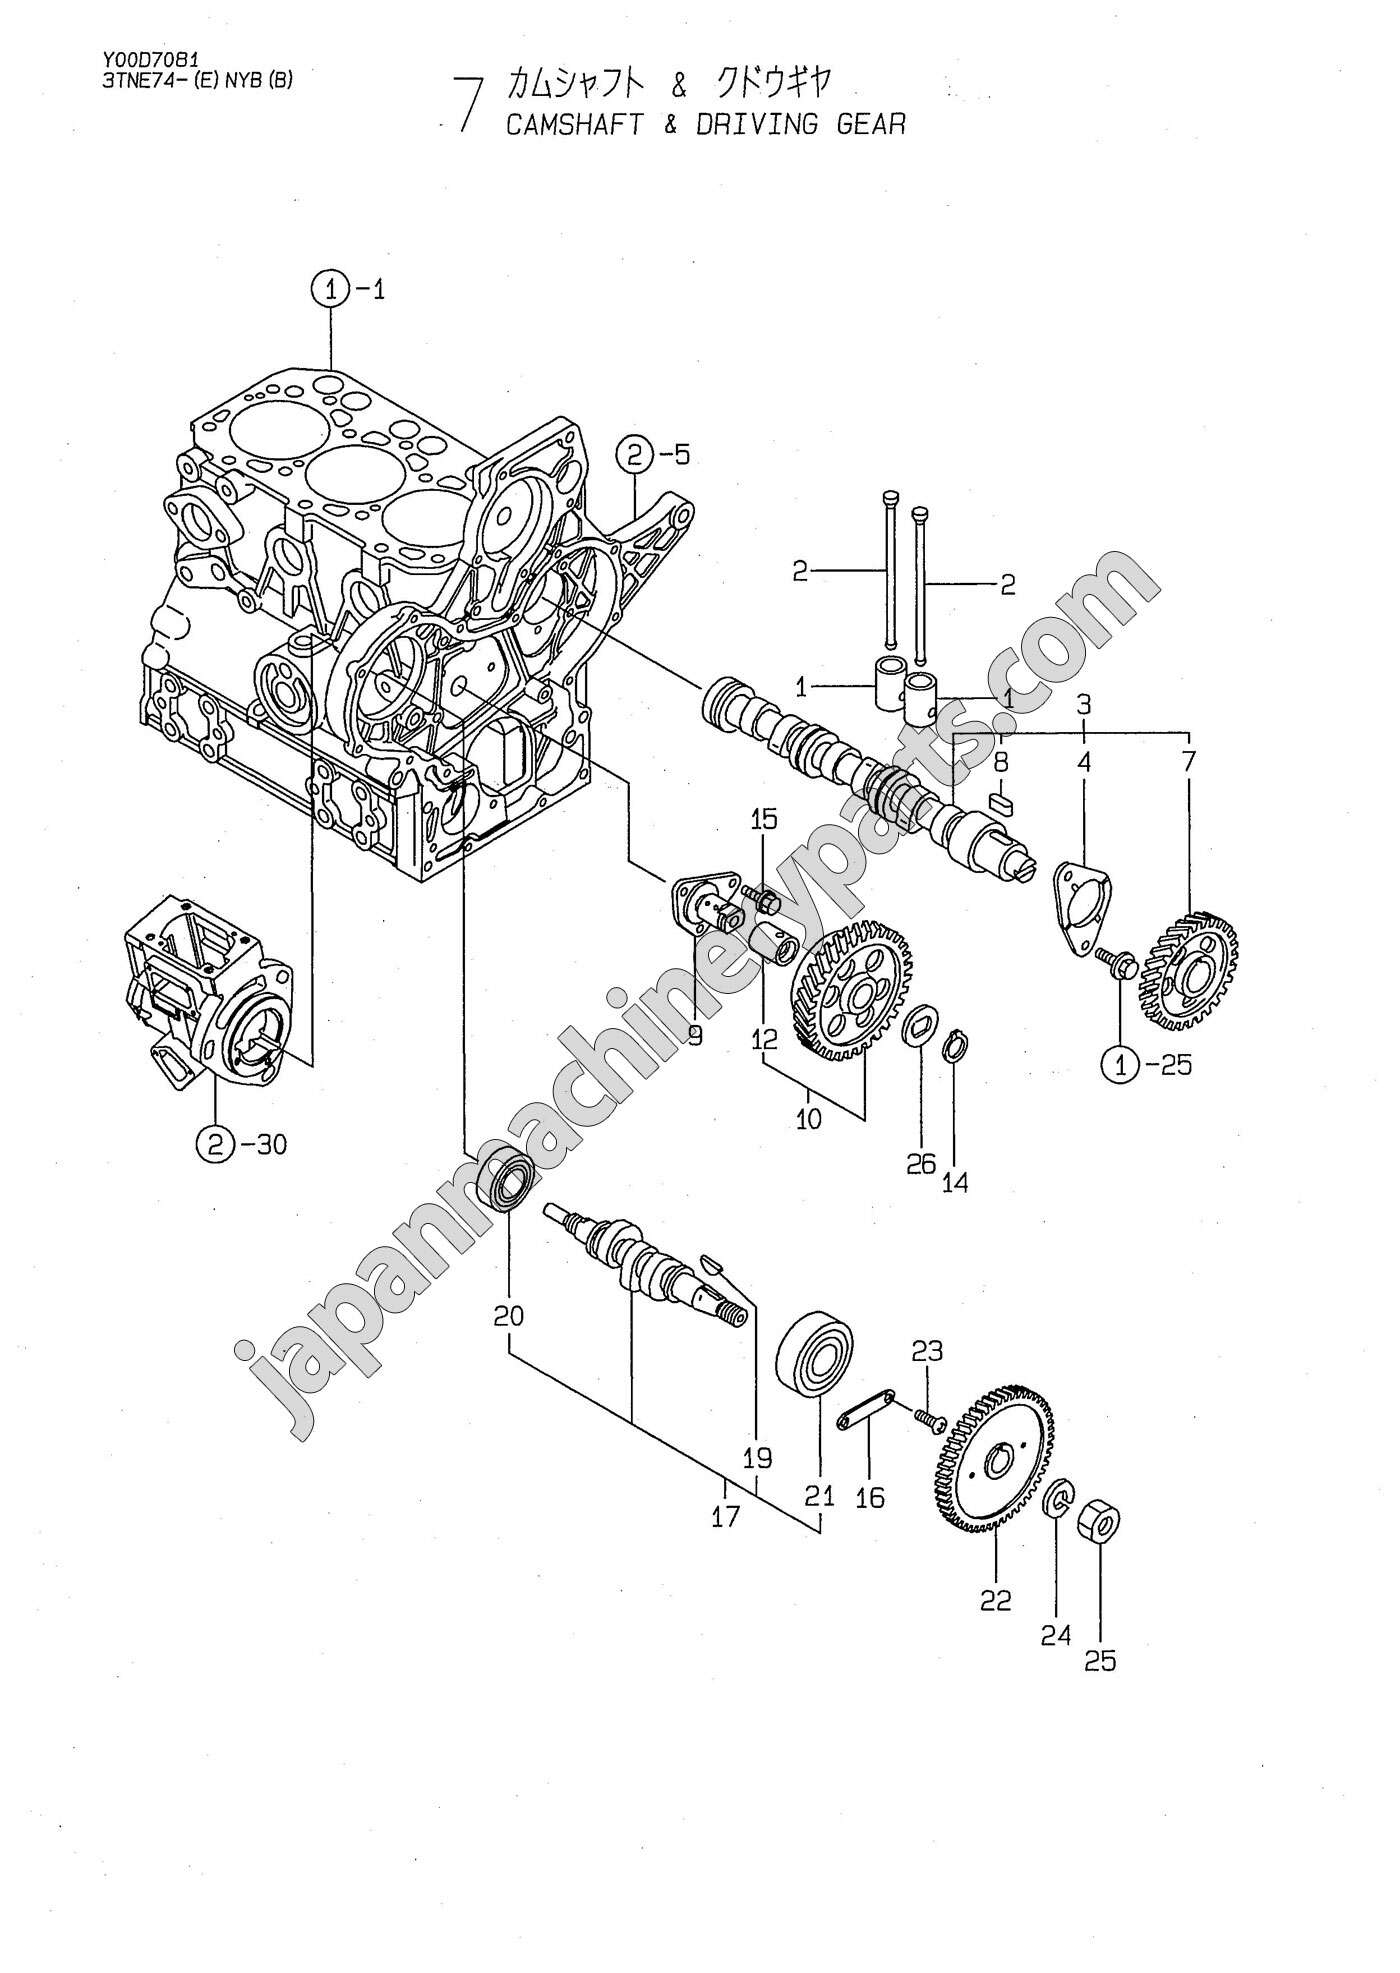 Wiring Diagram For Ford Tractor